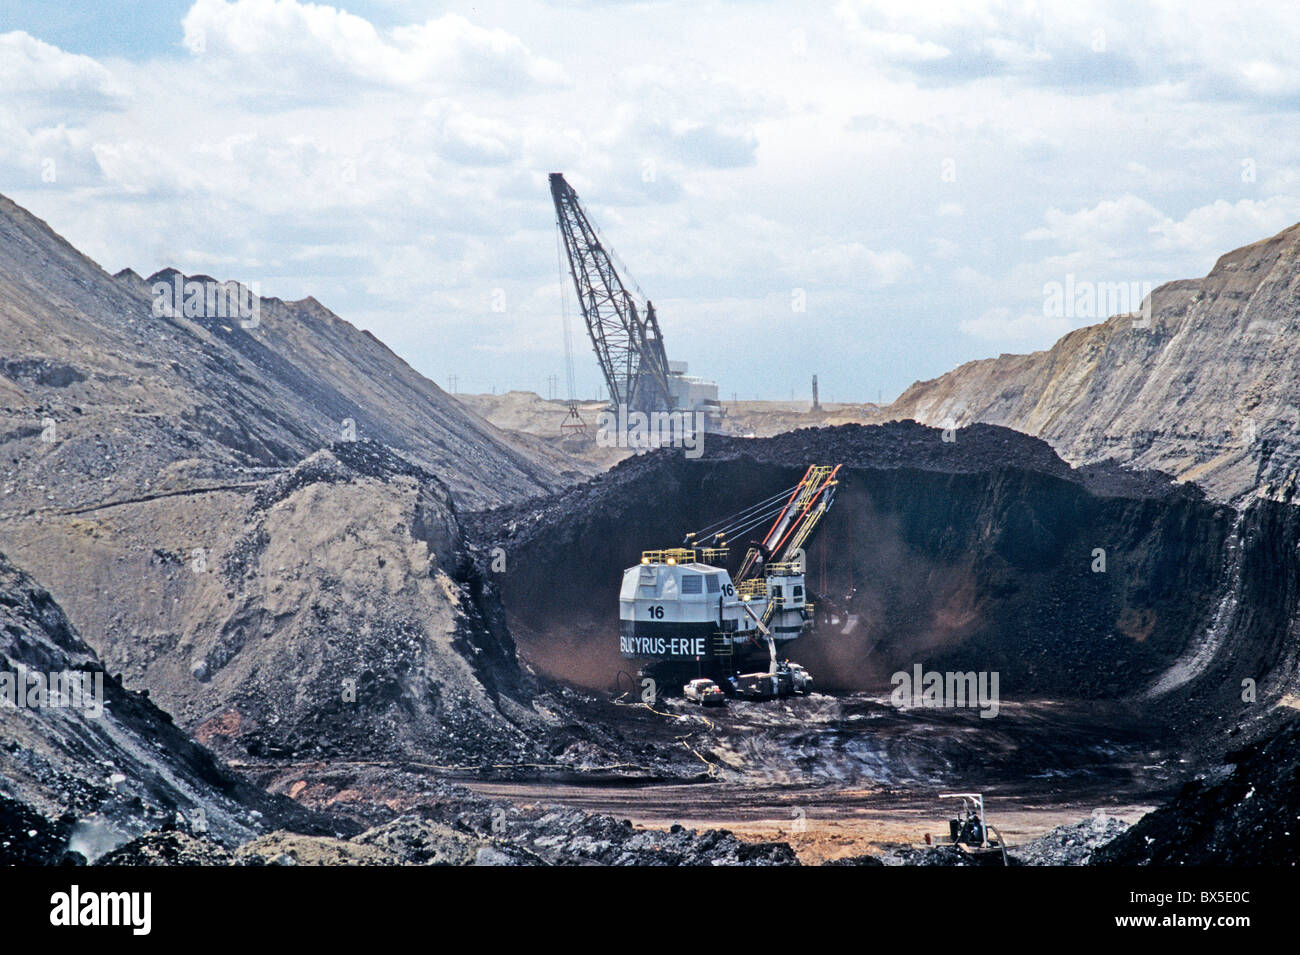 Coal Surface Mine, Bucyrus Electric shovel excavating from coal seam, - Stock Image